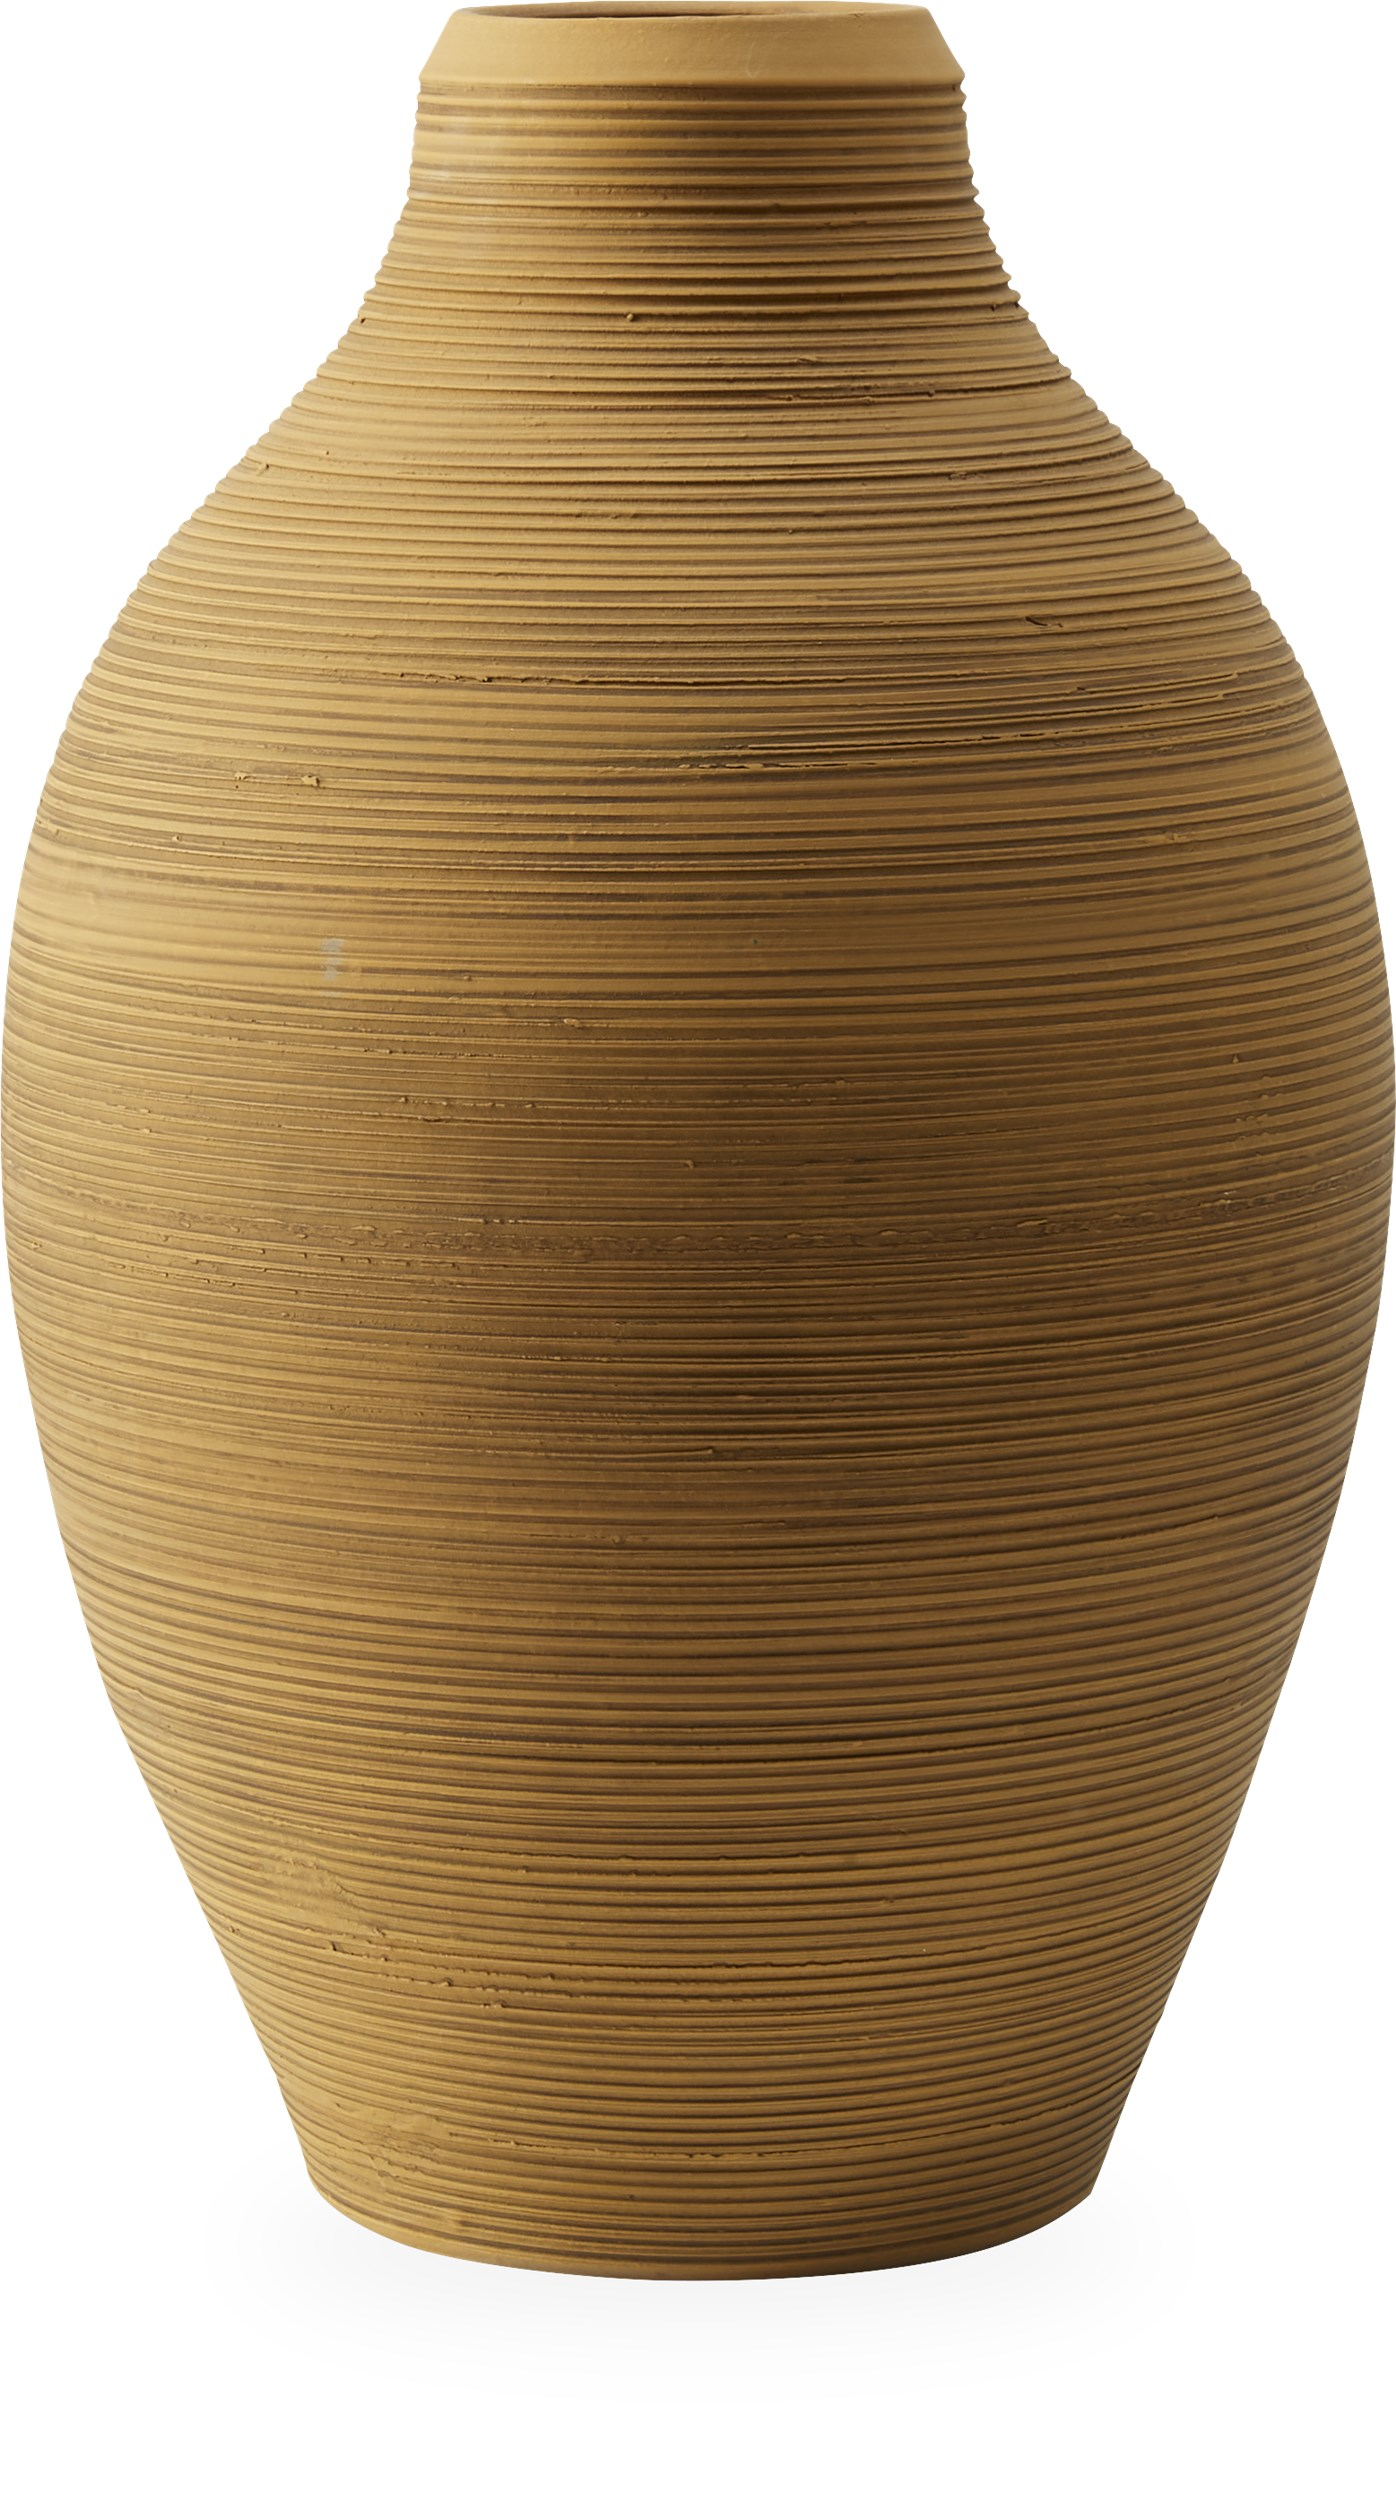 Gordo Vase 50 x 31 cm - Mustard yellow terracotta